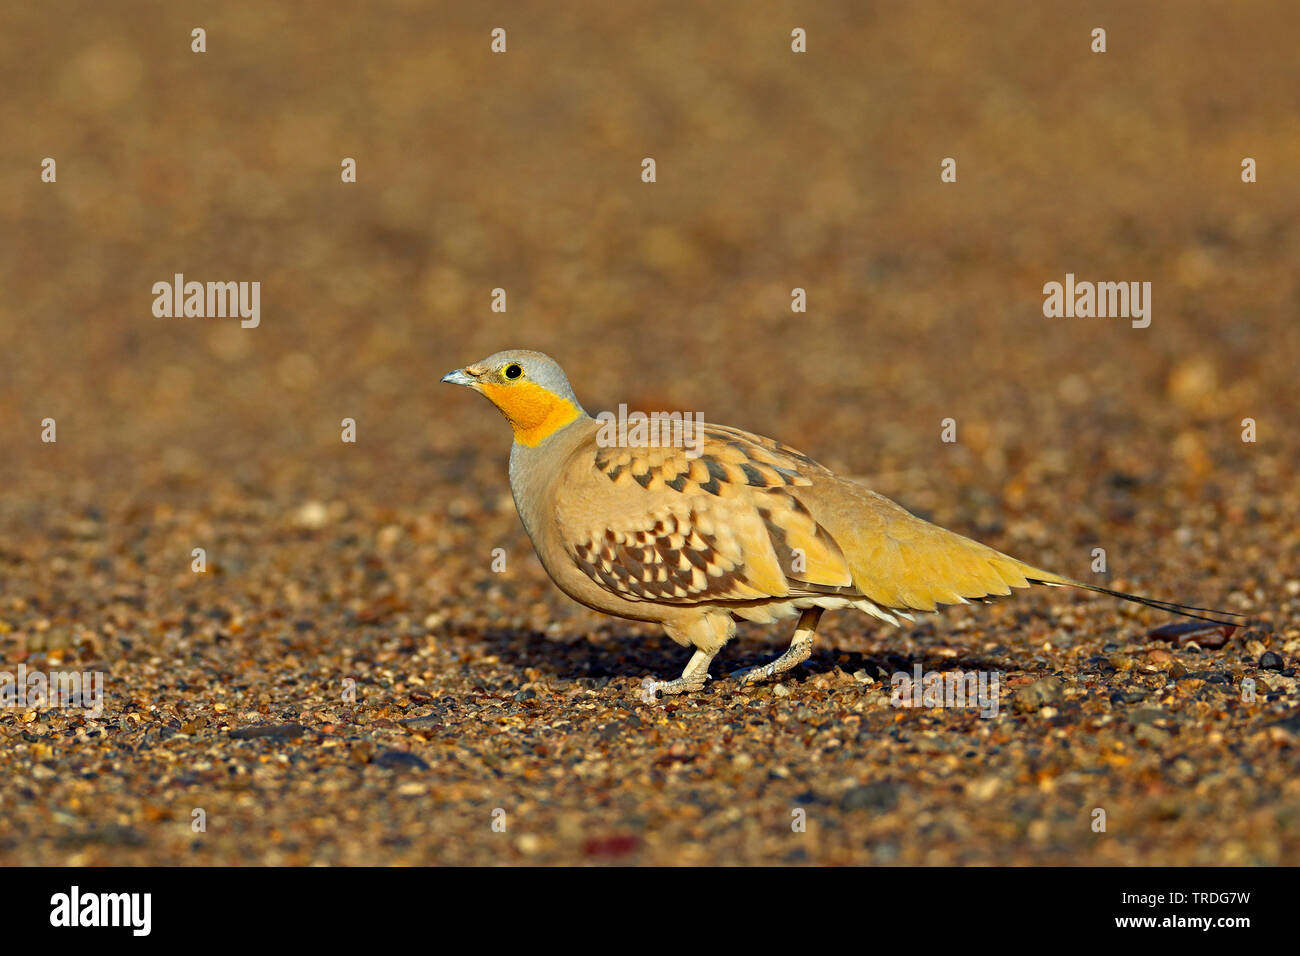 spotted sandgrouse (Pterocles senegallus), male perching on the ground, Morocco, Merzouga Stock Photo